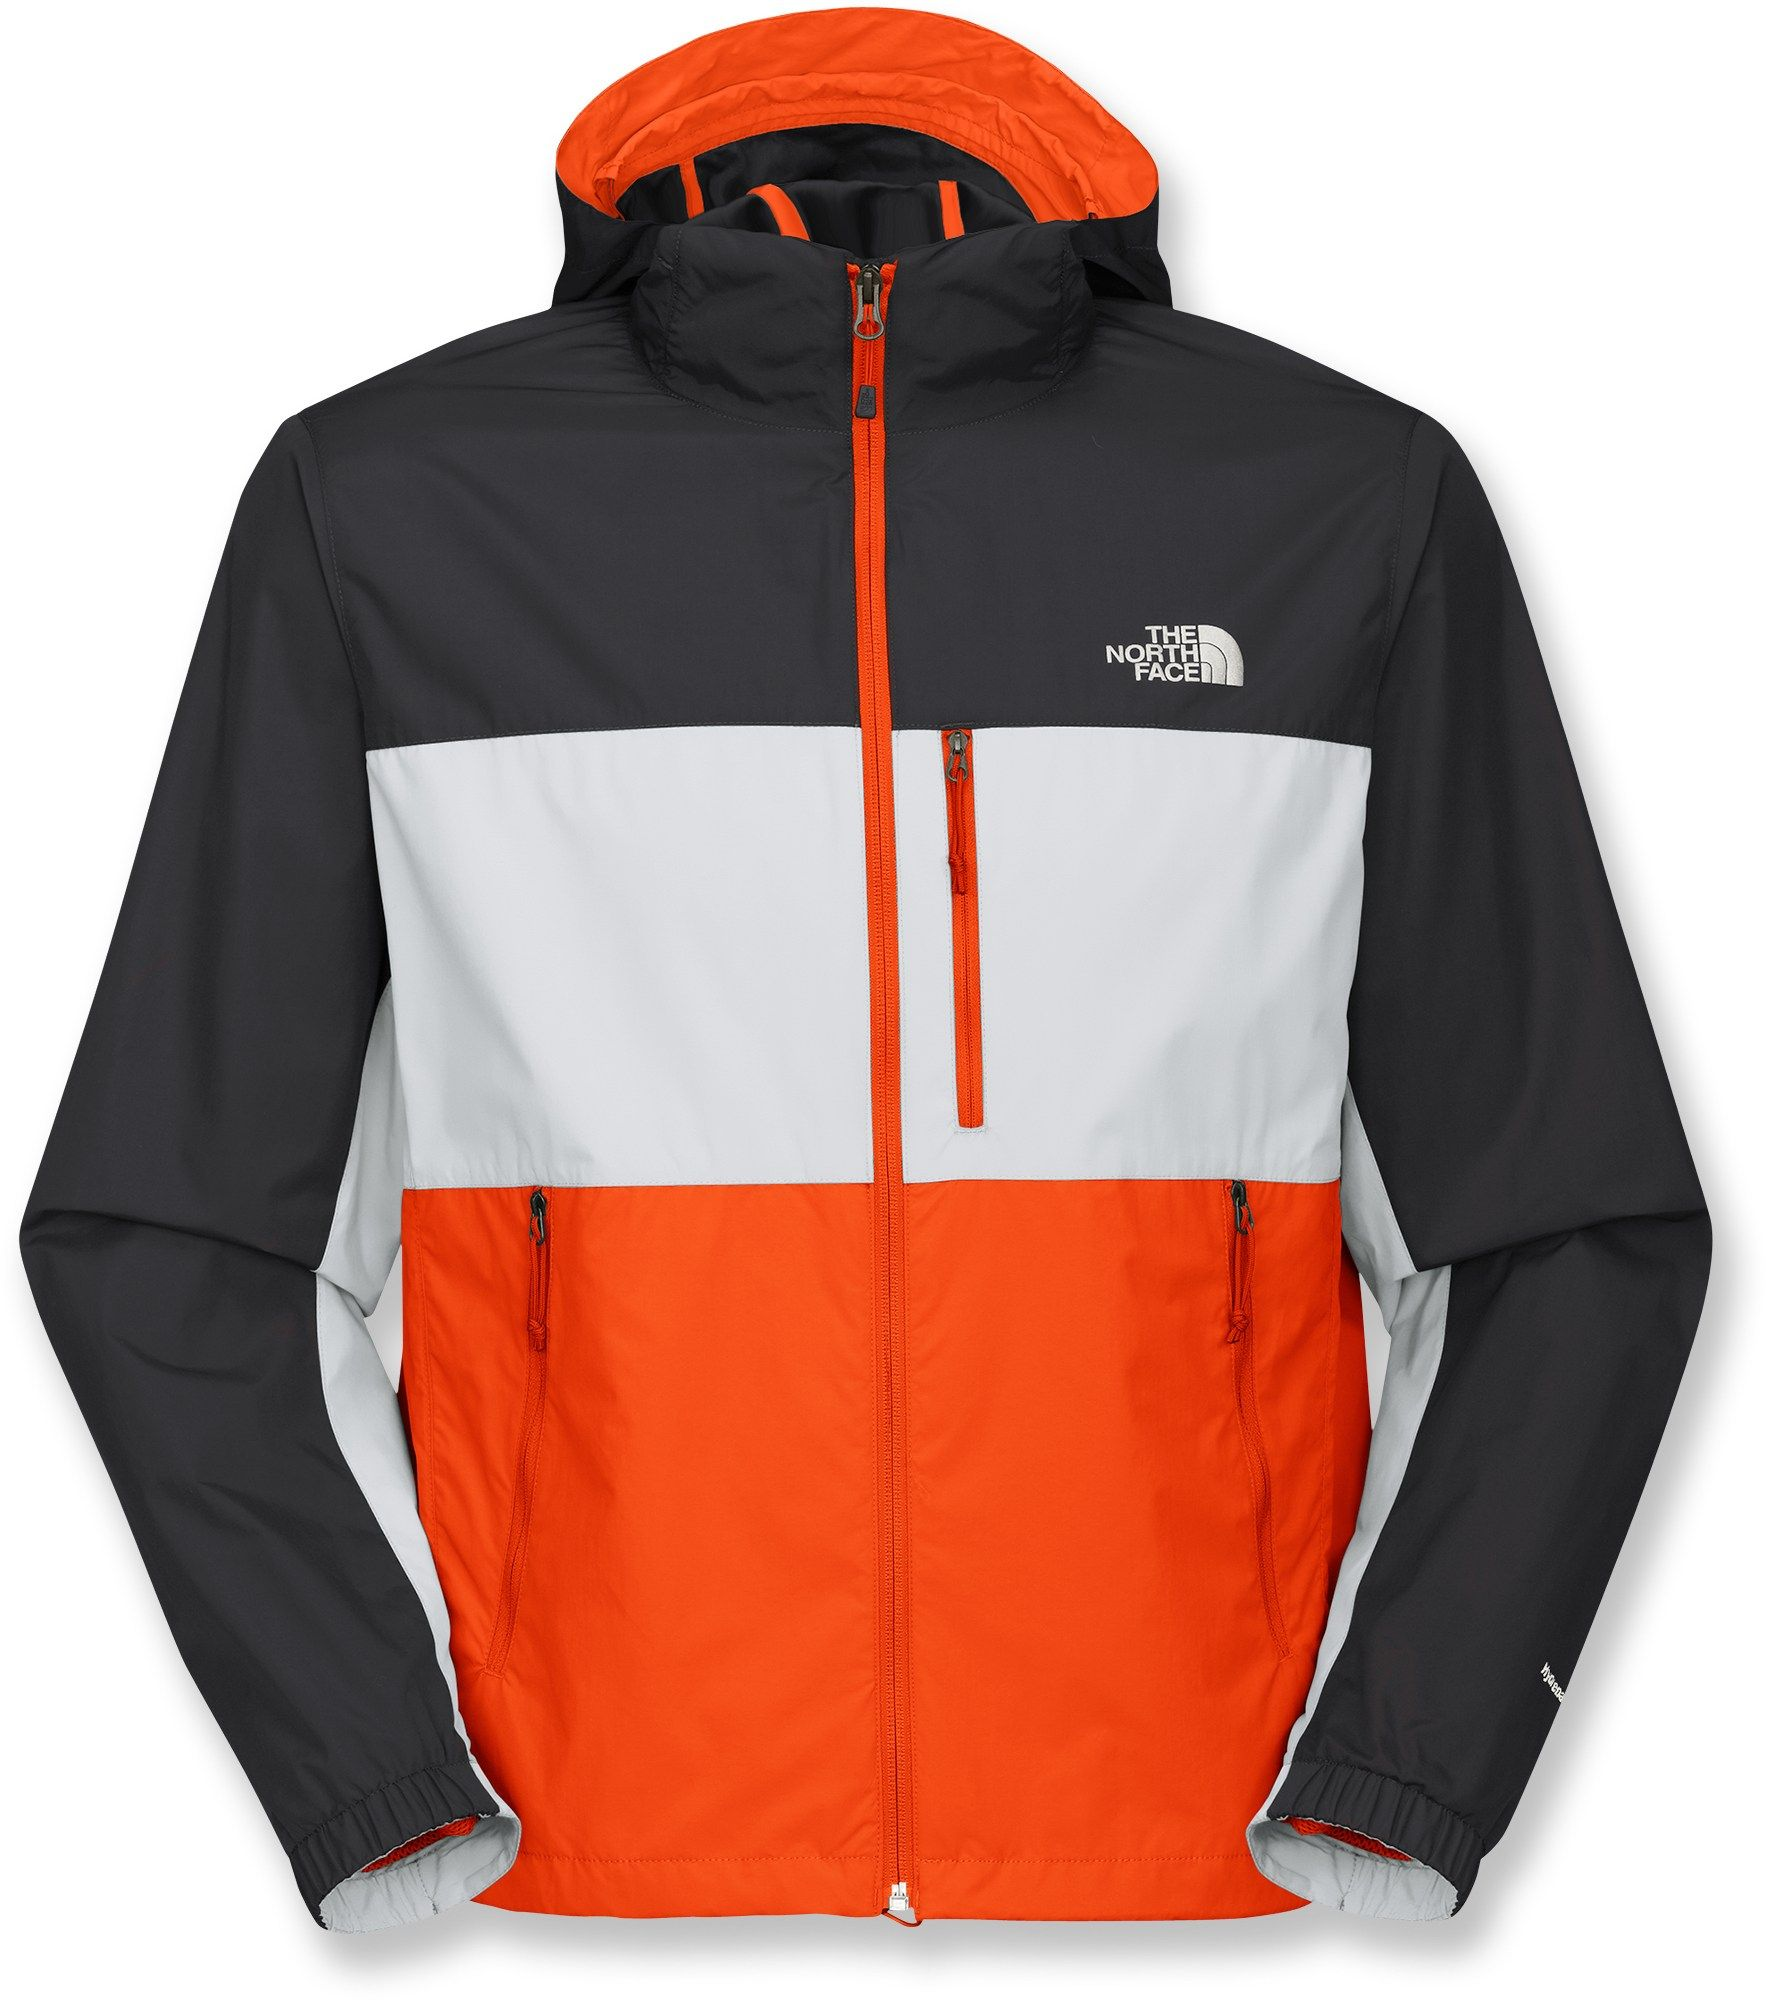 The North Face Atmosphere Jacket Men S 2012 Closeout Gents T Shirts Hoodie Outfit Men Jackets [ 2000 x 1766 Pixel ]